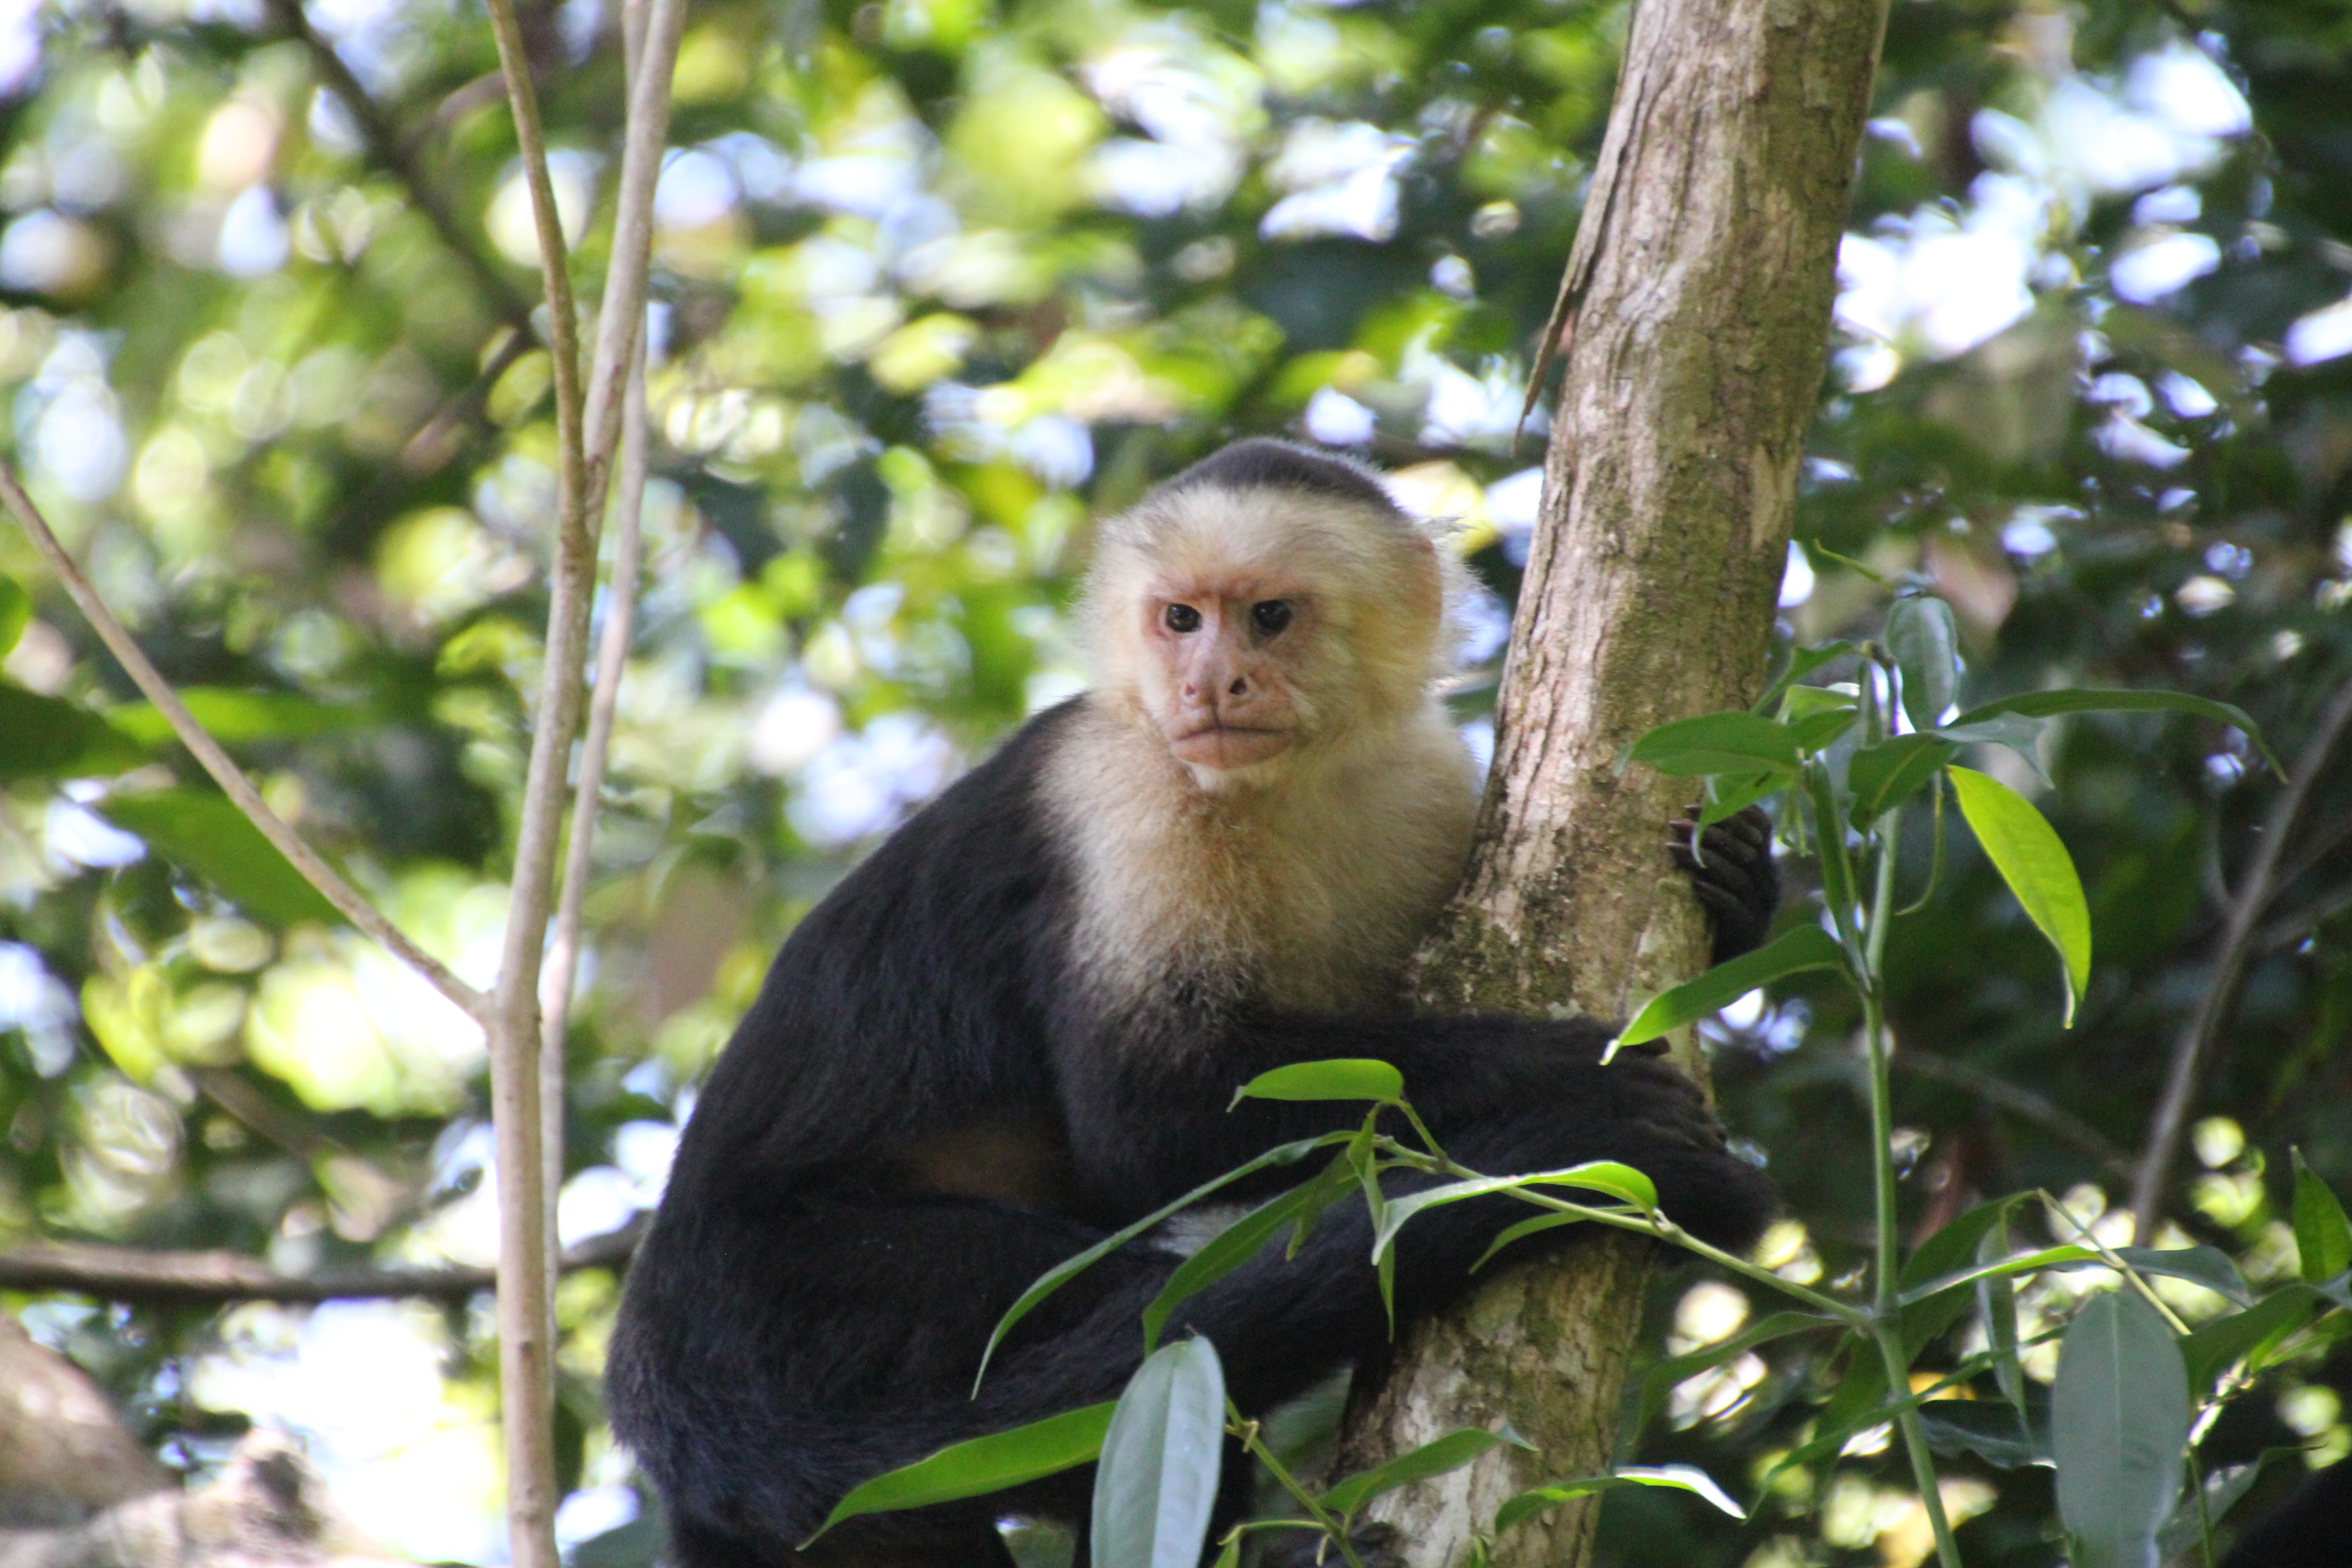 See interesting animal at Manual Antonio National Park, Costa Rica